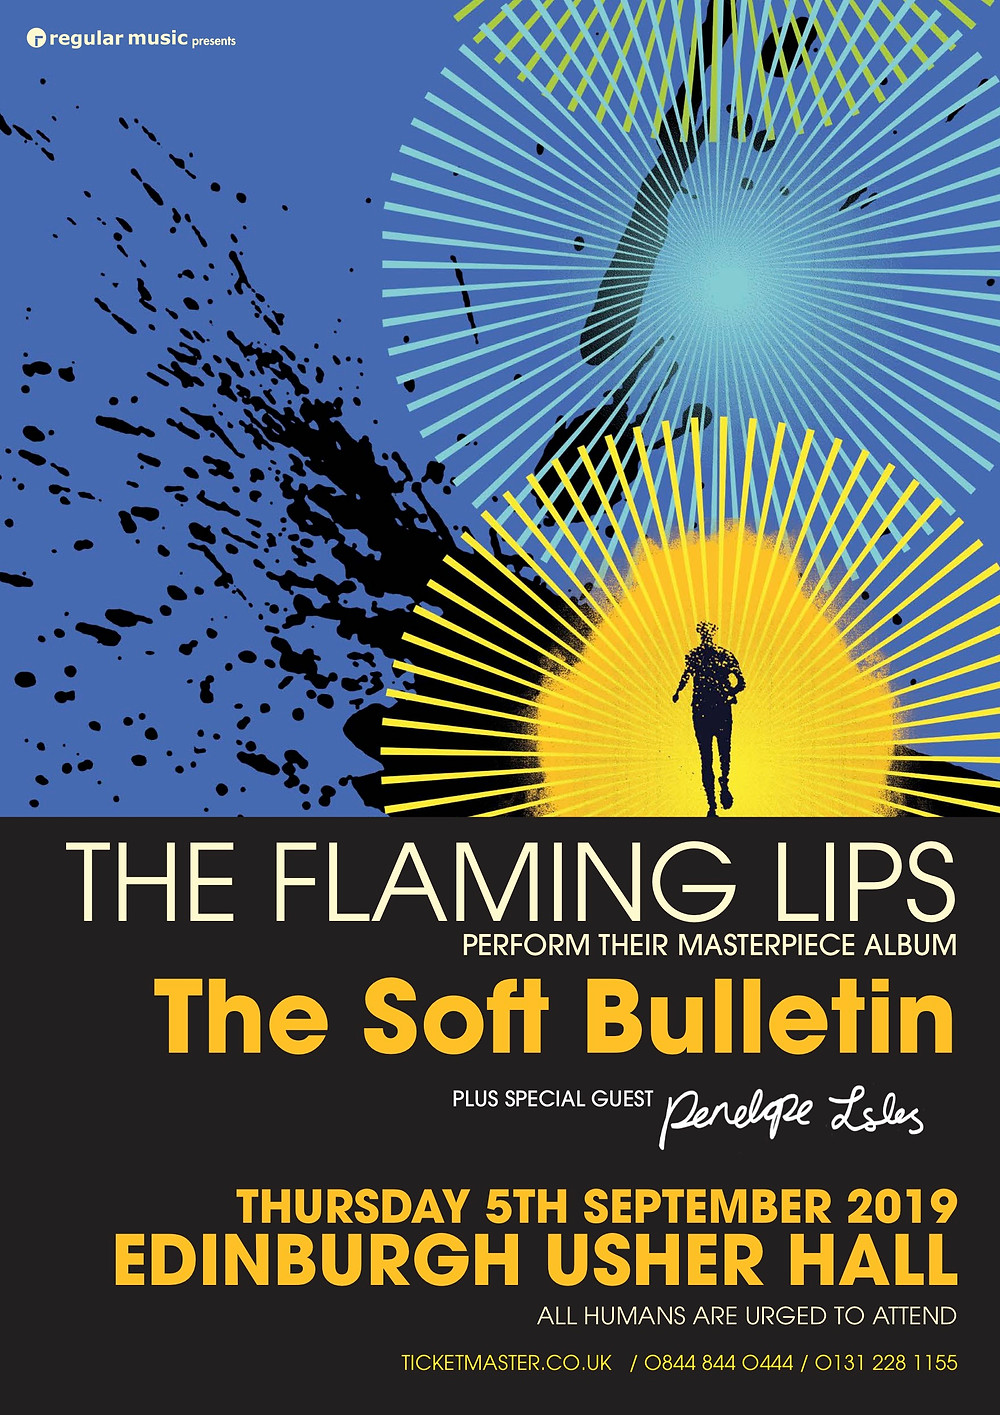 The Flaming Lips w Penelope Isles. Usher Hall 5th Sept 2019